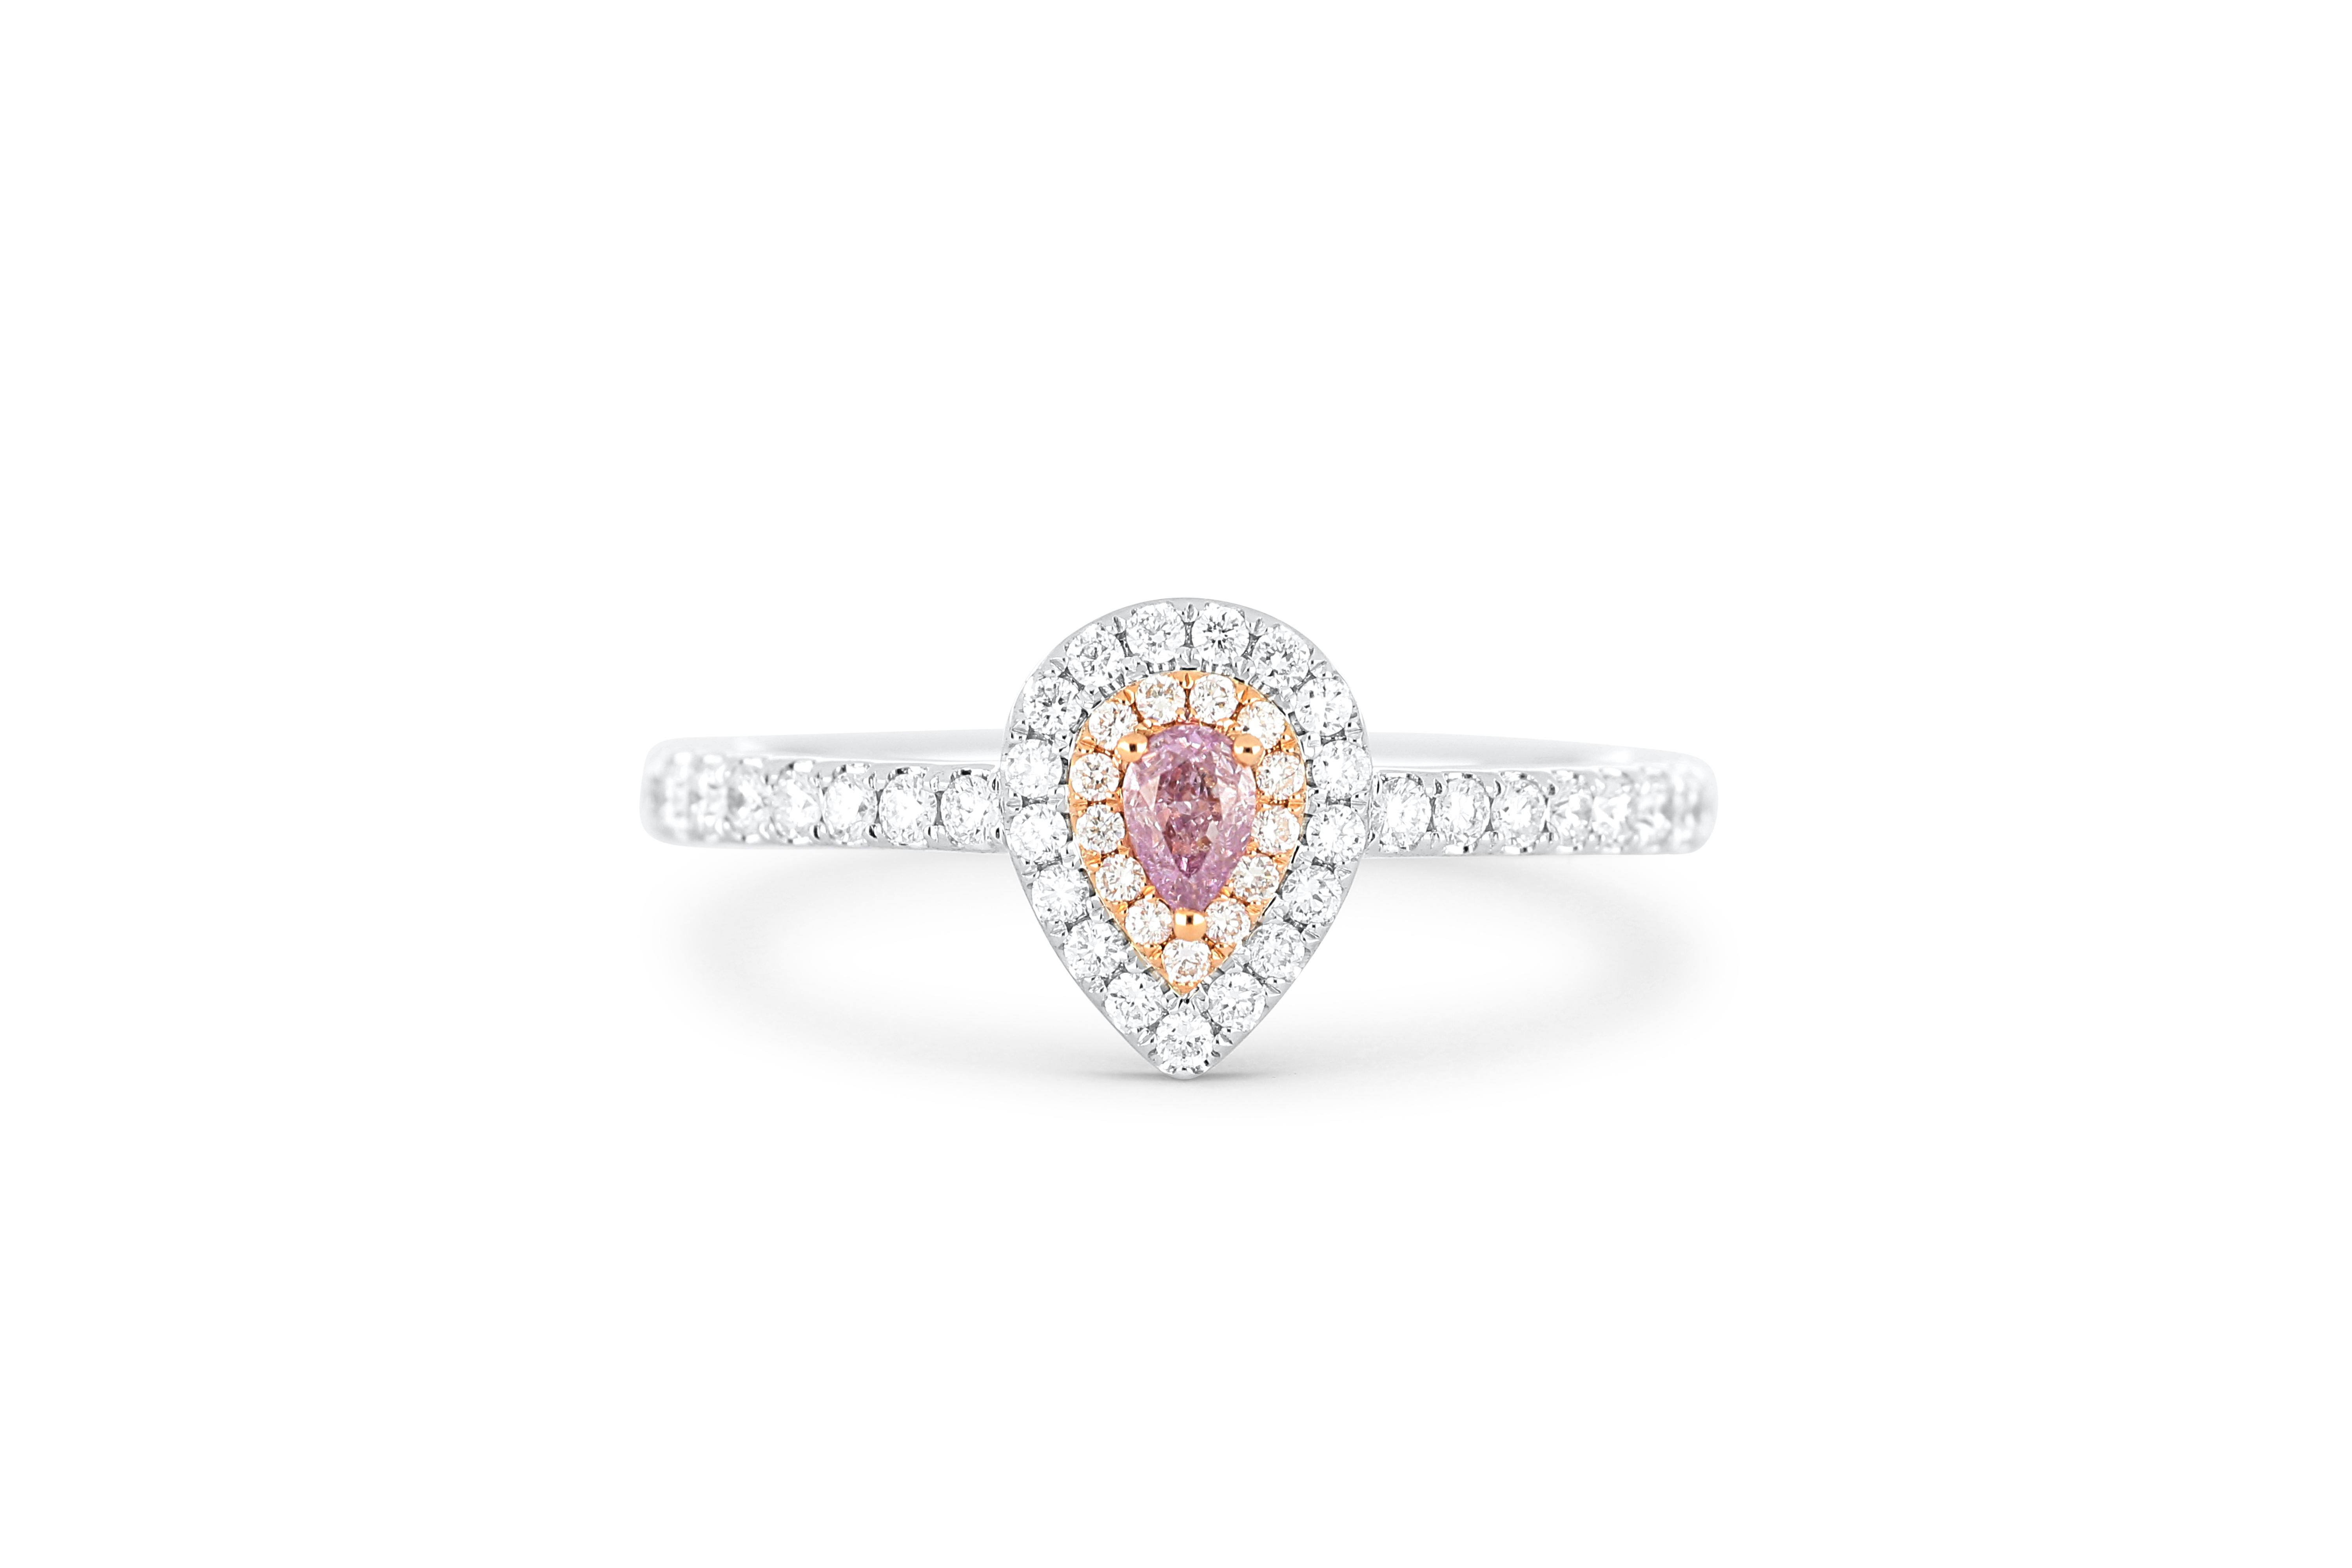 18k gold ring set with a centre FLPP 0.10ct pear cut natural diamond